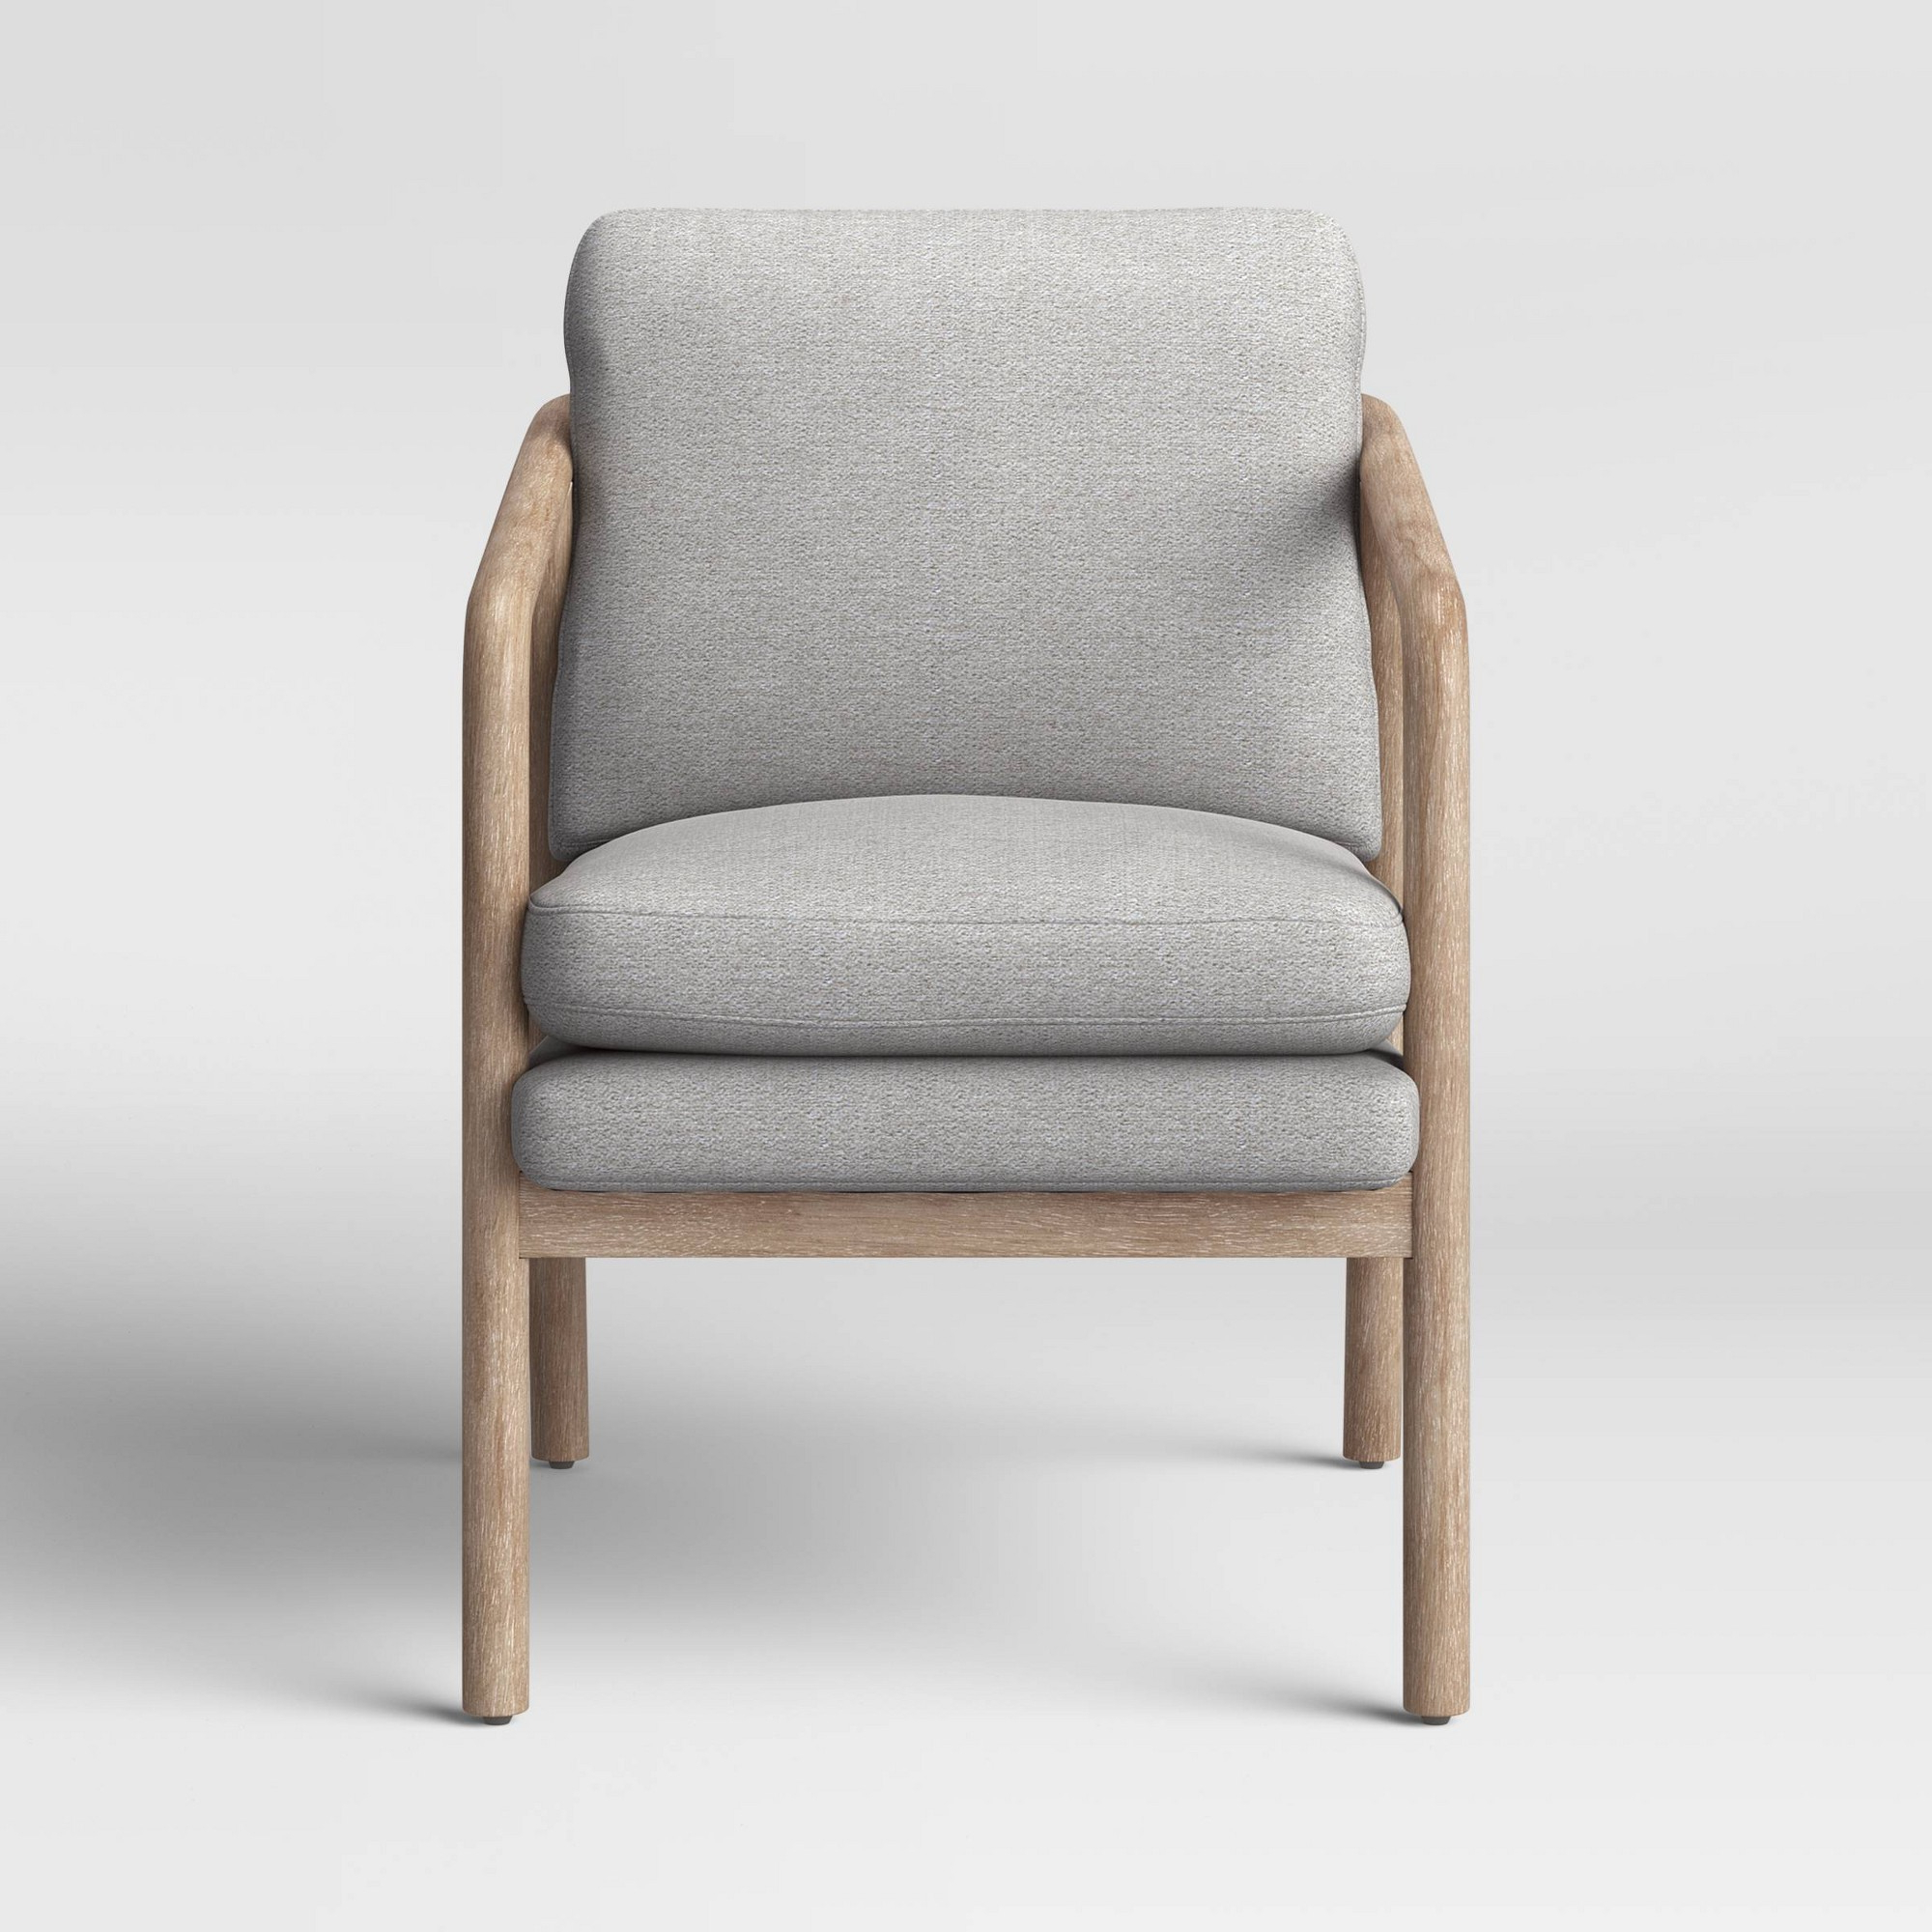 Famous Tufeld Wood Arm Chair Gray – Project 62 Throughout Biggerstaff Polyester Blend Armchairs (View 6 of 20)